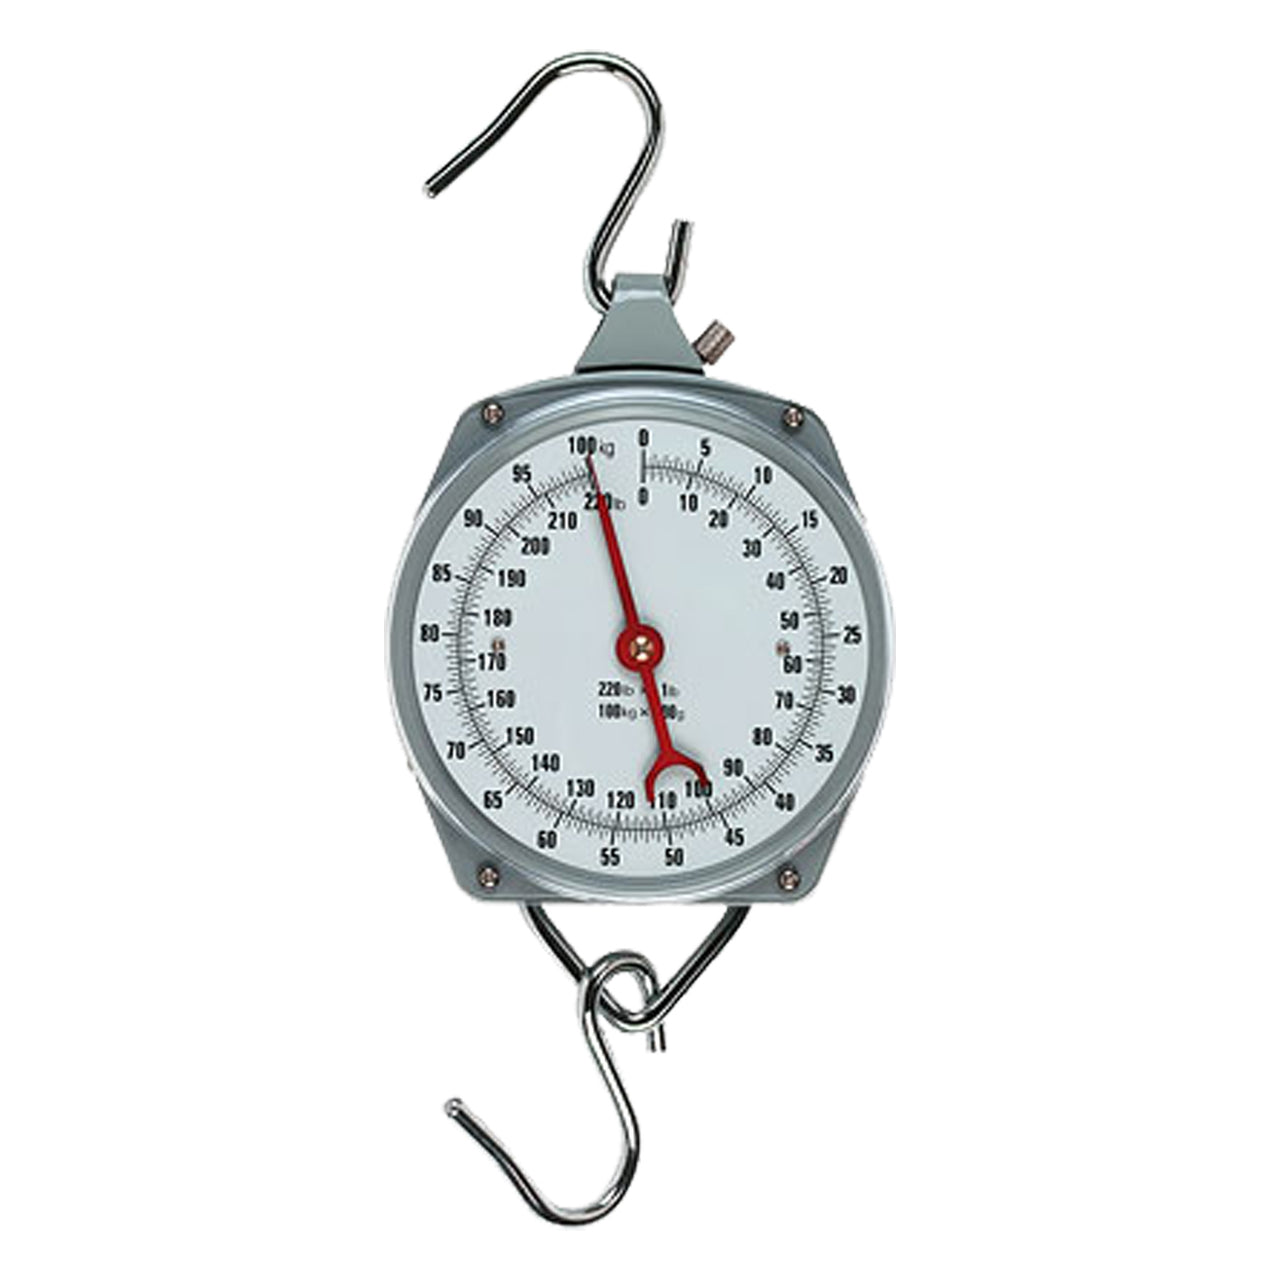 Kerbl Suspended Dial Balance 100 Kg - Weigh Slings Scales Kerbl - Canada